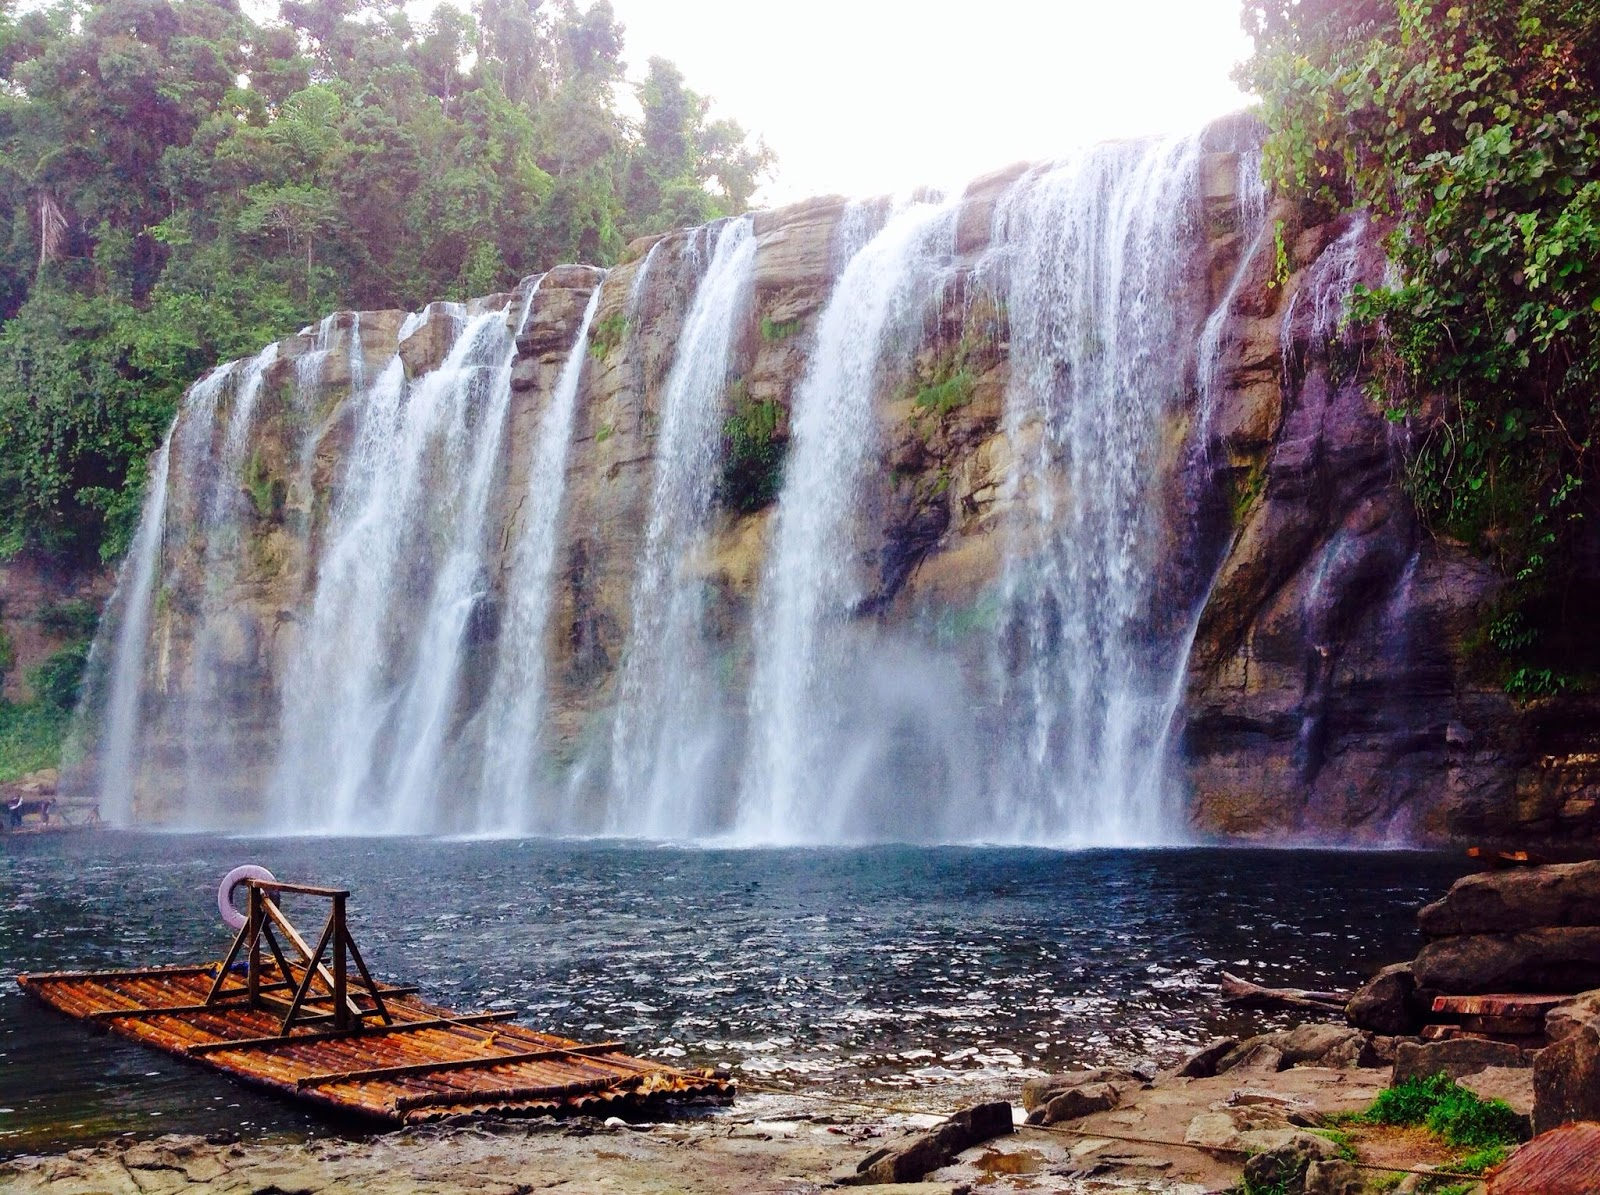 Cam 4 U >> the traveller & her thoughts: 4-DAY BACKPACKING TRIP IN SURIGAO (itinerary)